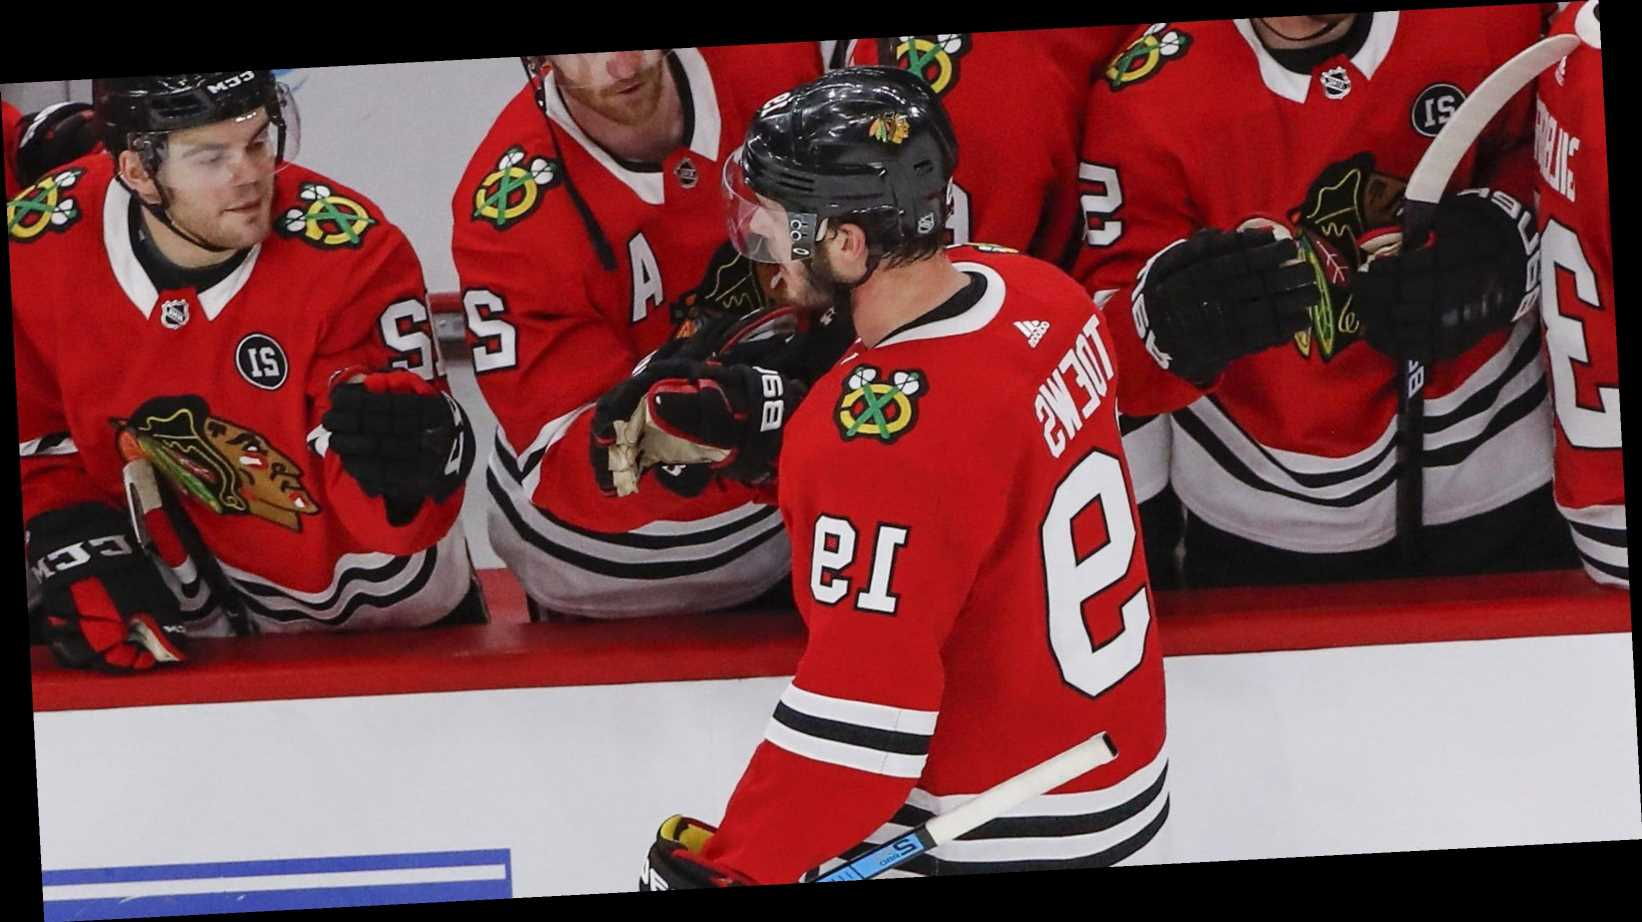 Columbus Blue Jackets at Chicago Blackhawks odds, picks and betting tips